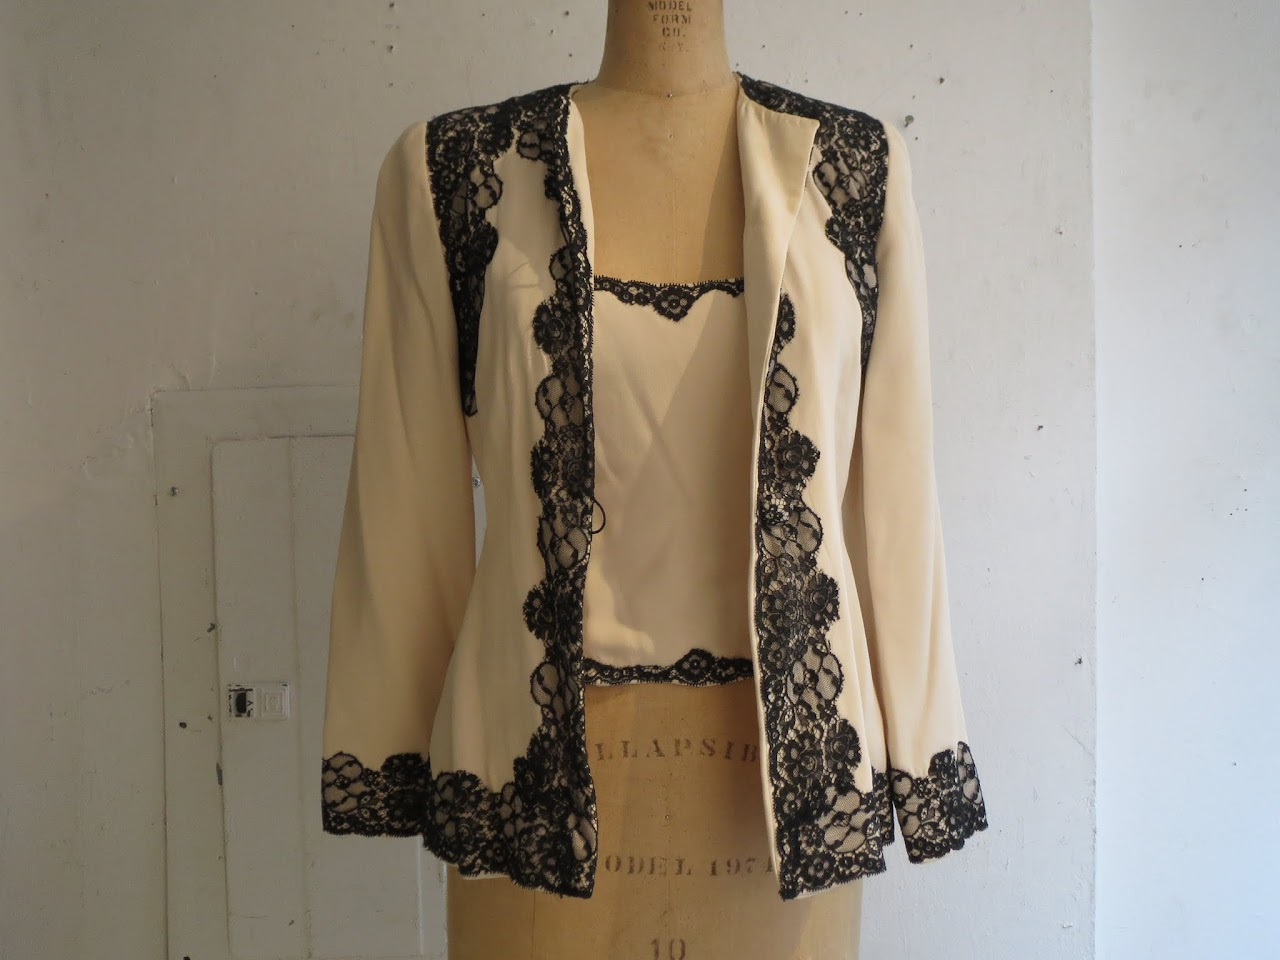 Carolina Herrera Jacket and Top Combo